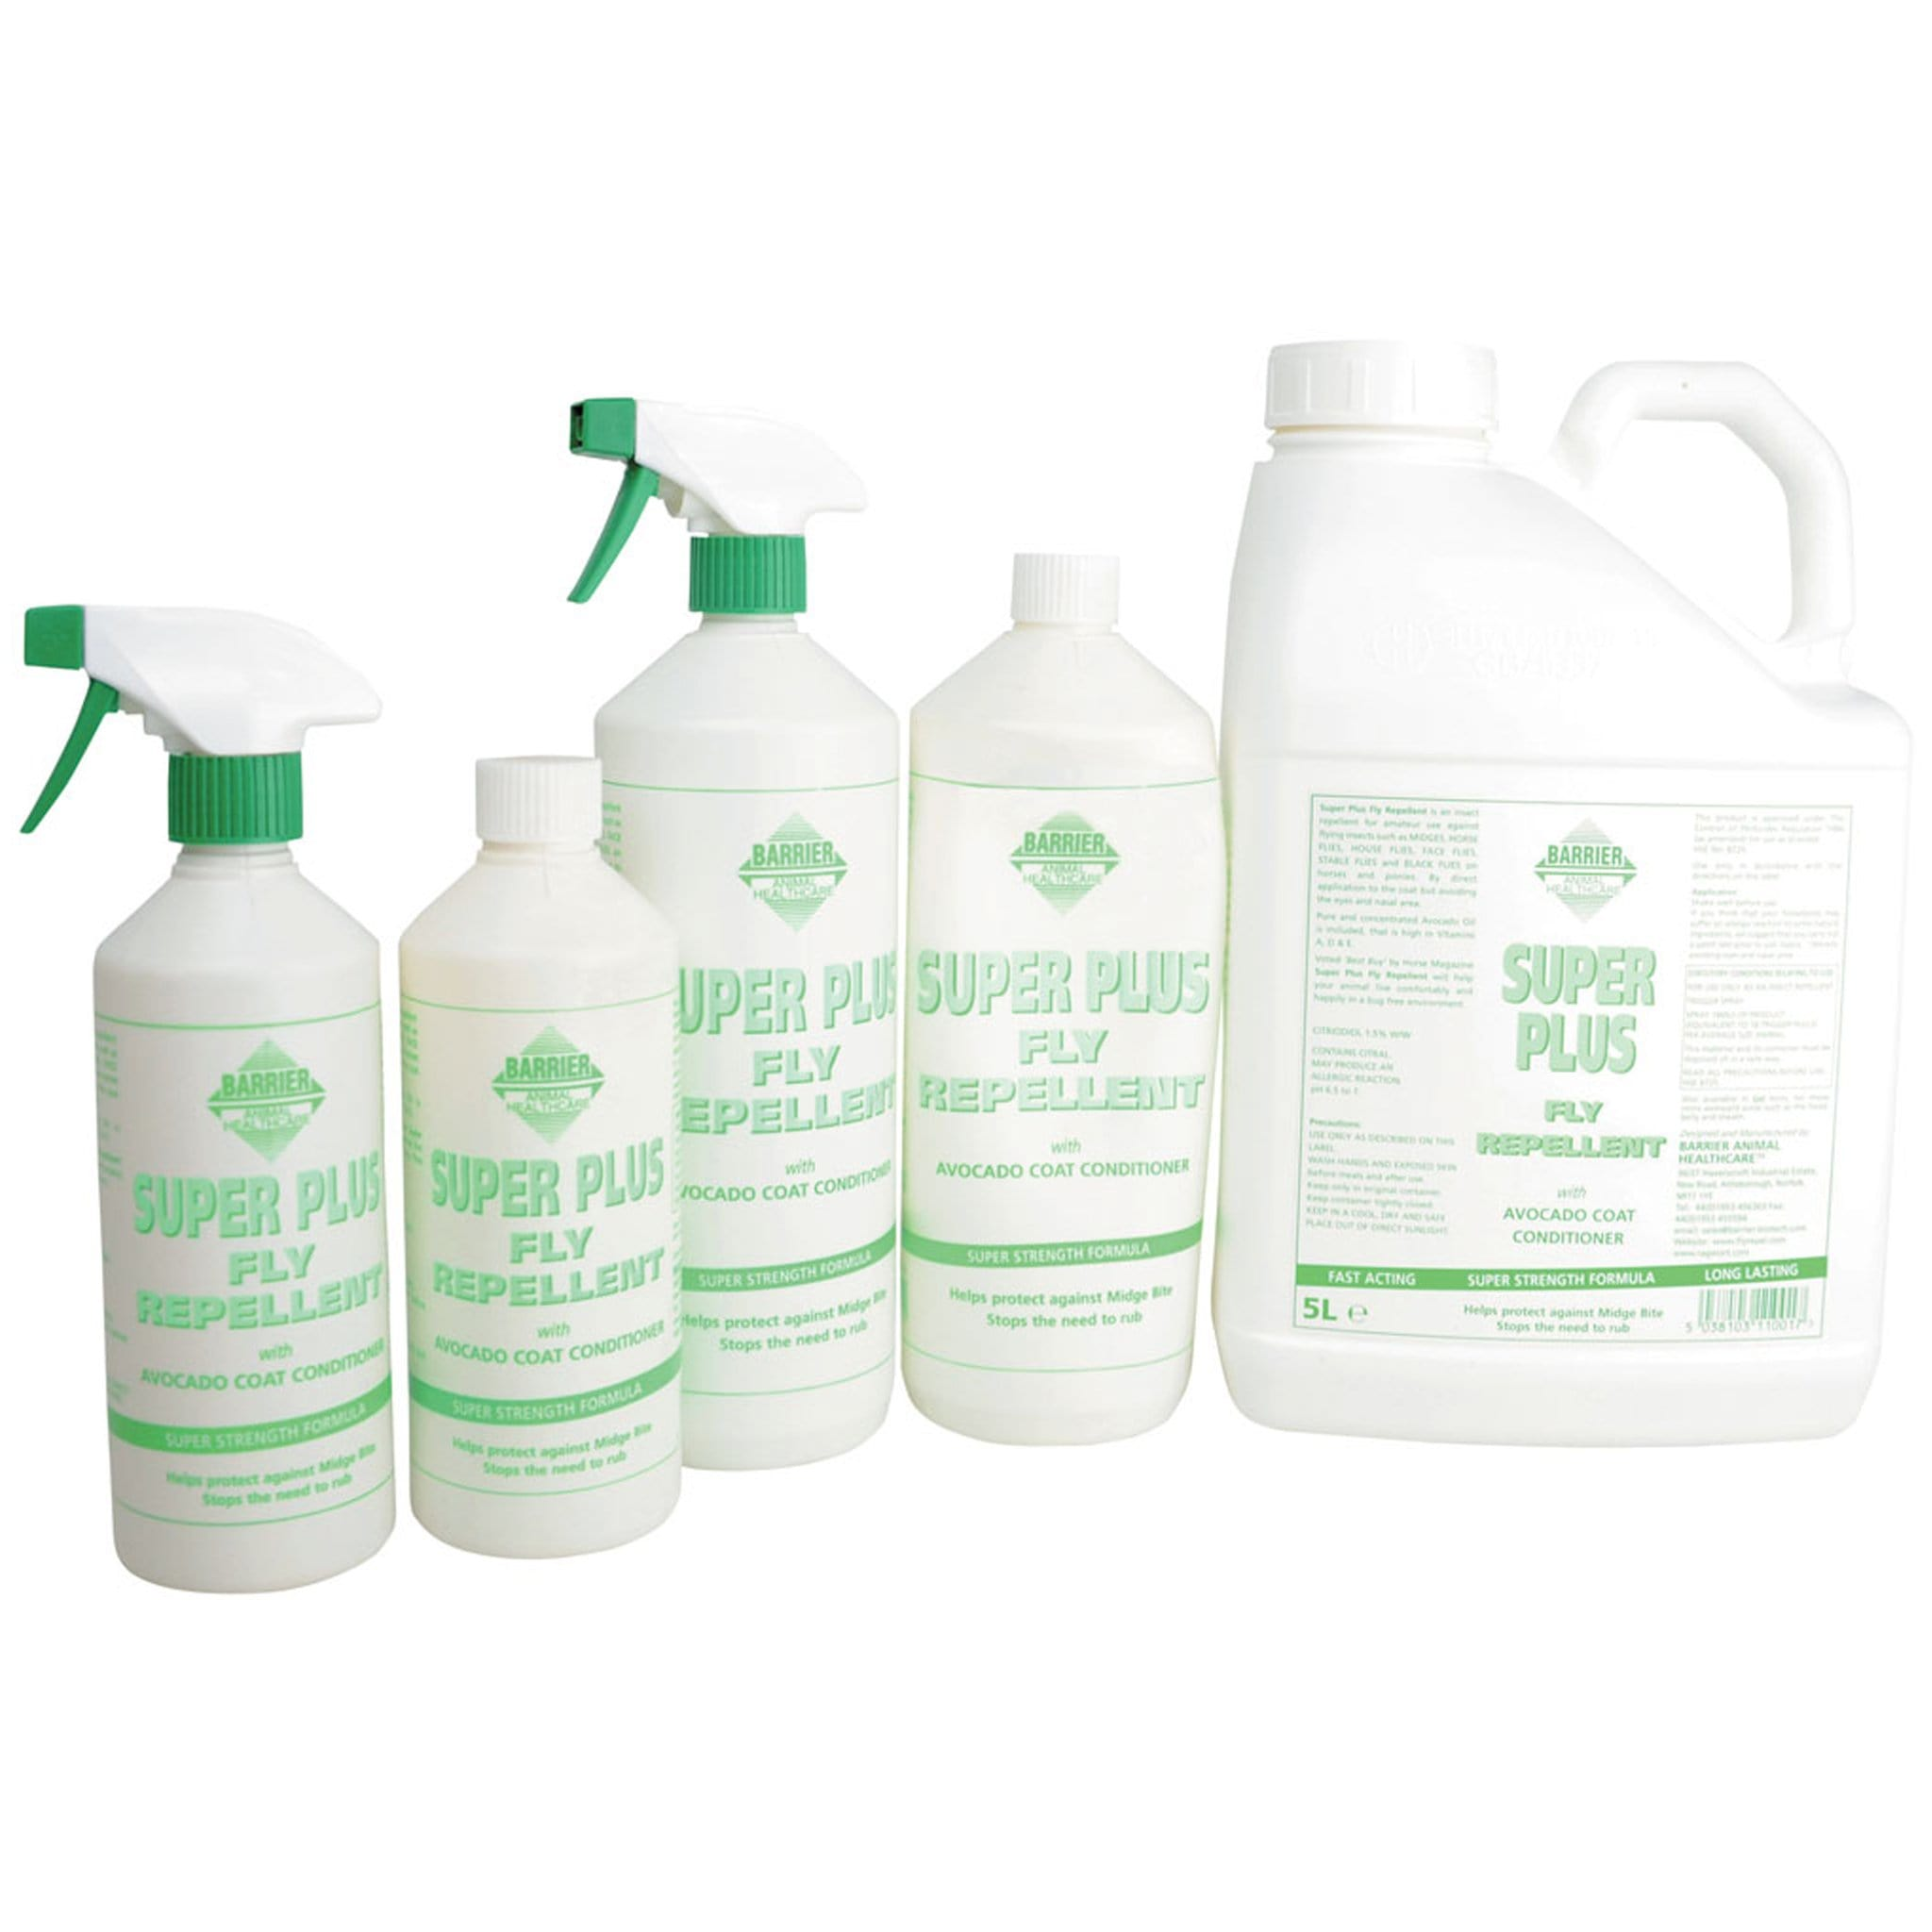 Barrier Super Plus Fly Repellent Spray 8466 500ml spray, 500ml refill bottle, 1 litre spray, 1 litre refill bottle, and 5 litre refill bottle